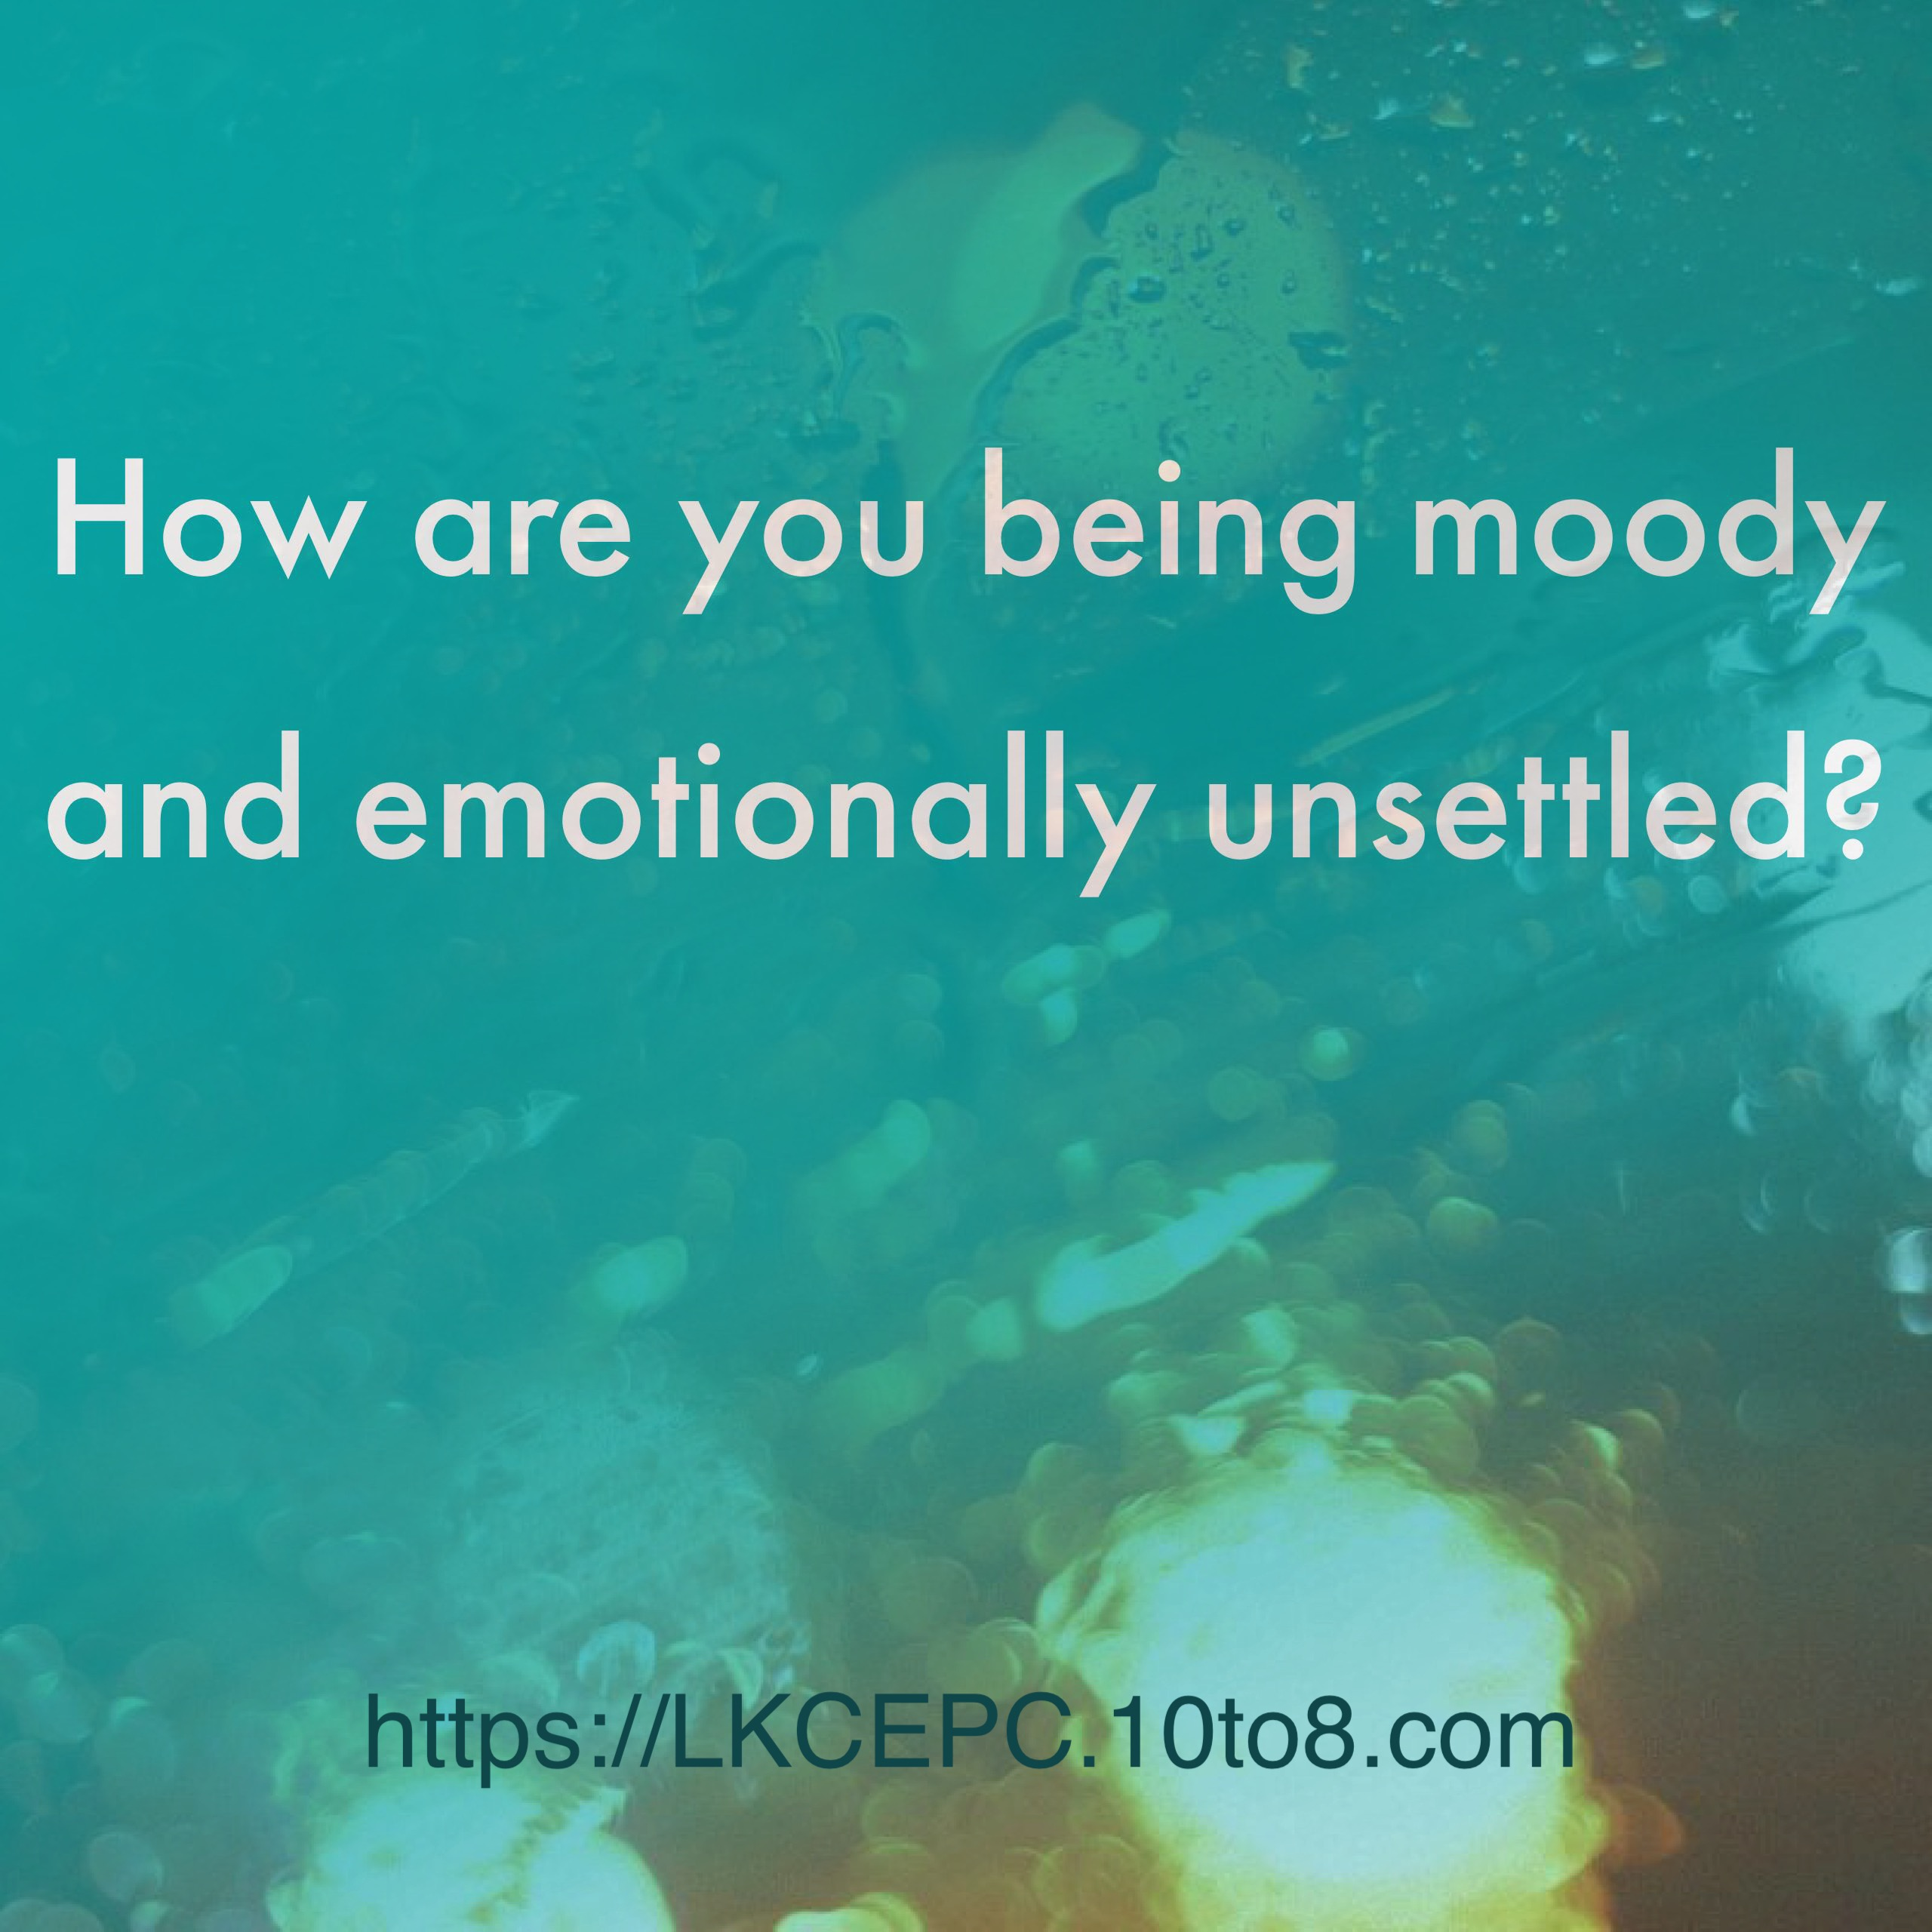 emotionally unsettled